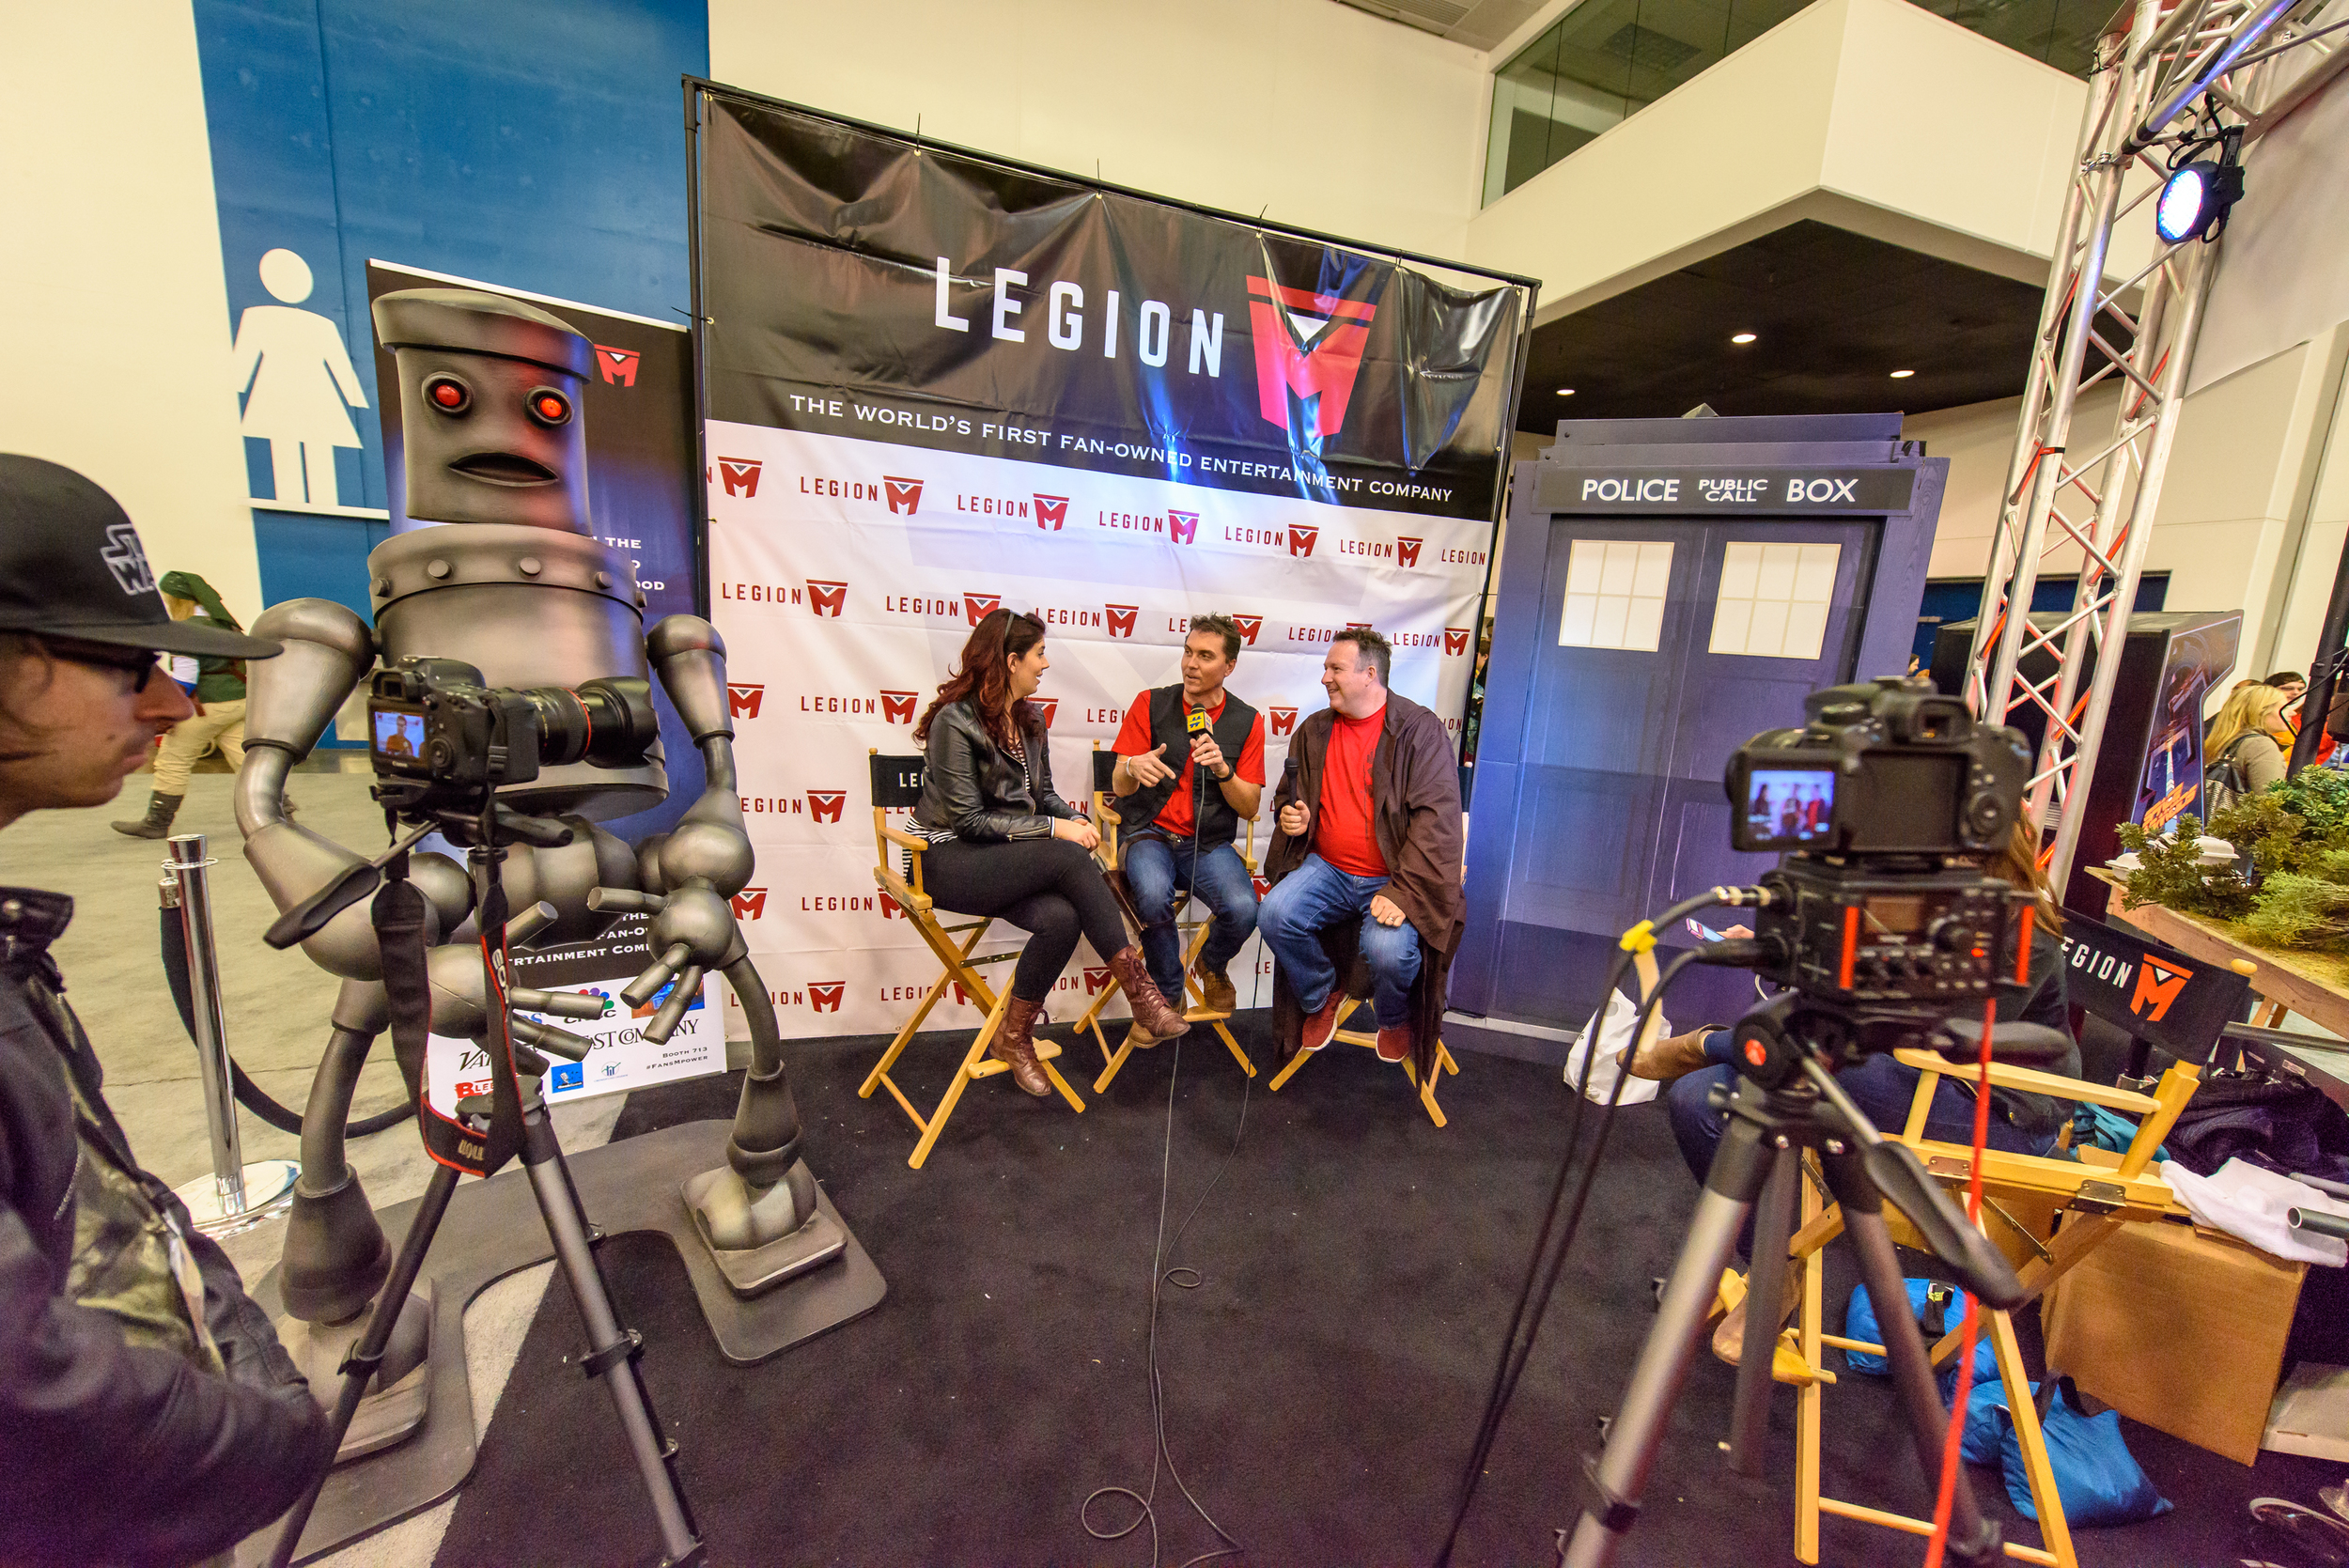 Legion M cofounders Paul Scanlan (middle, in the Han Solo vest)and Jeff Annison (right, in the Jedi Robes)were busy, fielding over 26 press interviews in 2.5 days.